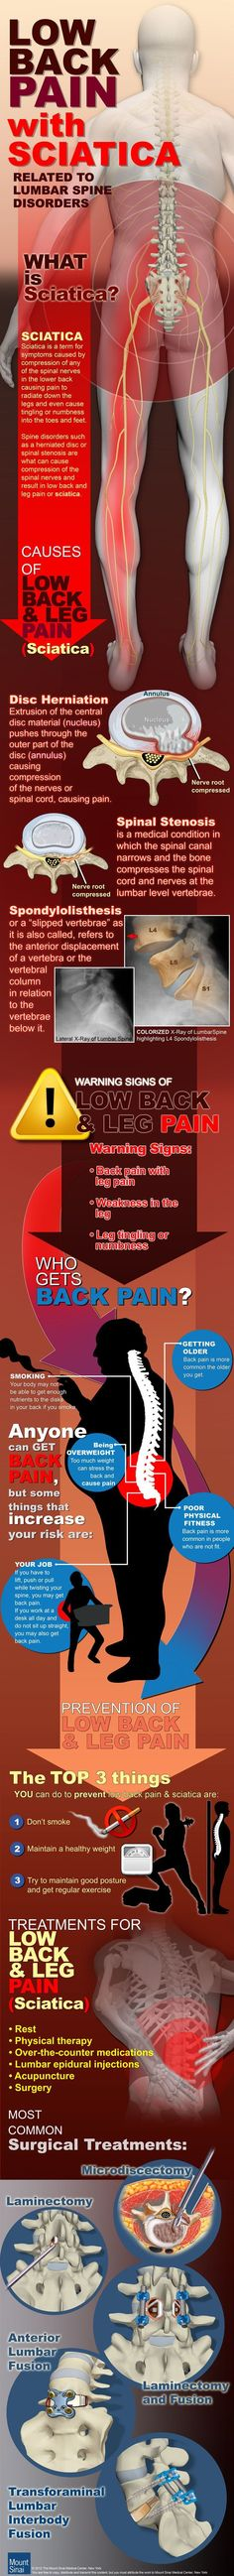 Low Back Pain with Sciatica – here's the TRUTH back surgeries are UNnecessary – of people with multiple back surgeries have not gone back to work 4 yrs later Back surgeries are so bad there is a medical term- FBSS failed back surgery syndrome Sciatic Pain, Sciatic Nerve, Nerve Pain, Fitness Workouts, Piriformis Syndrome, Back Surgery, Sciatica Pain Relief, Sciatica Stretches, Back Pain